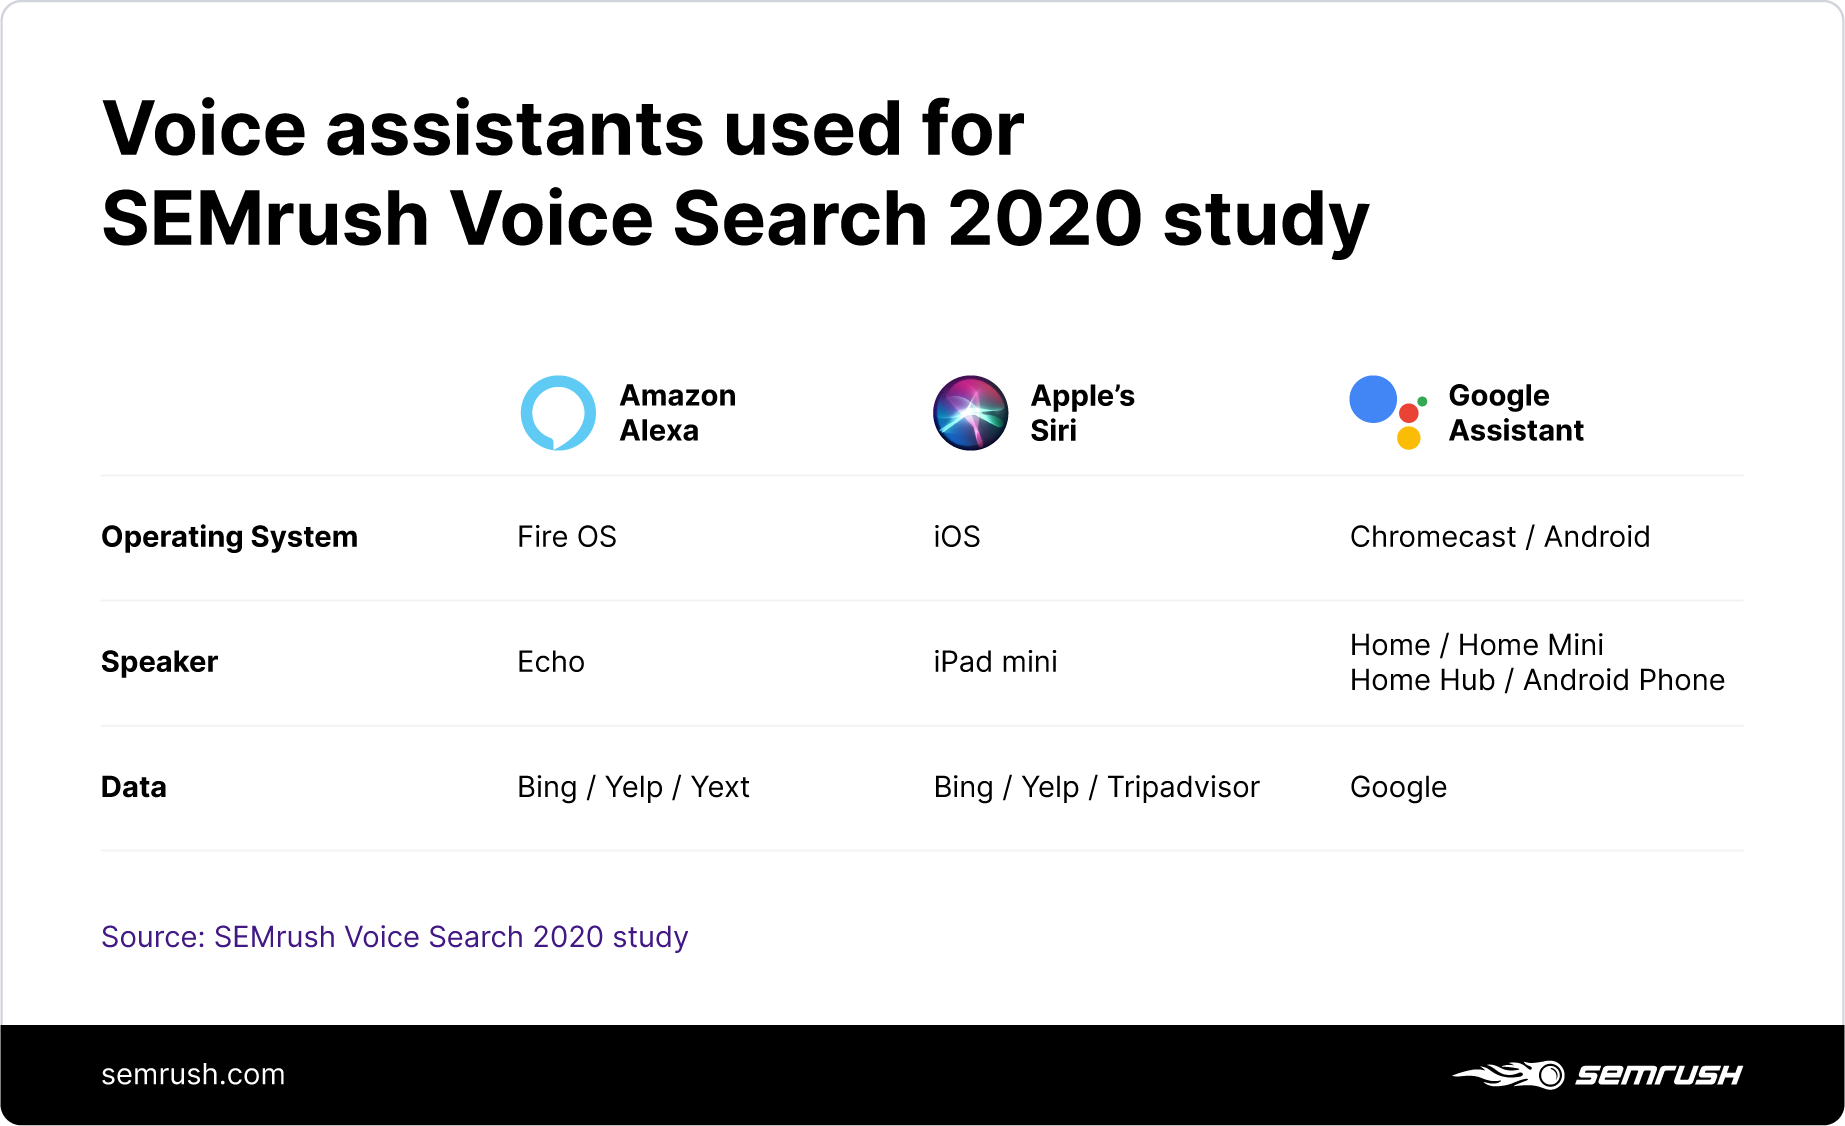 Voice assistants used for SEMrush Voice Search 2020 study